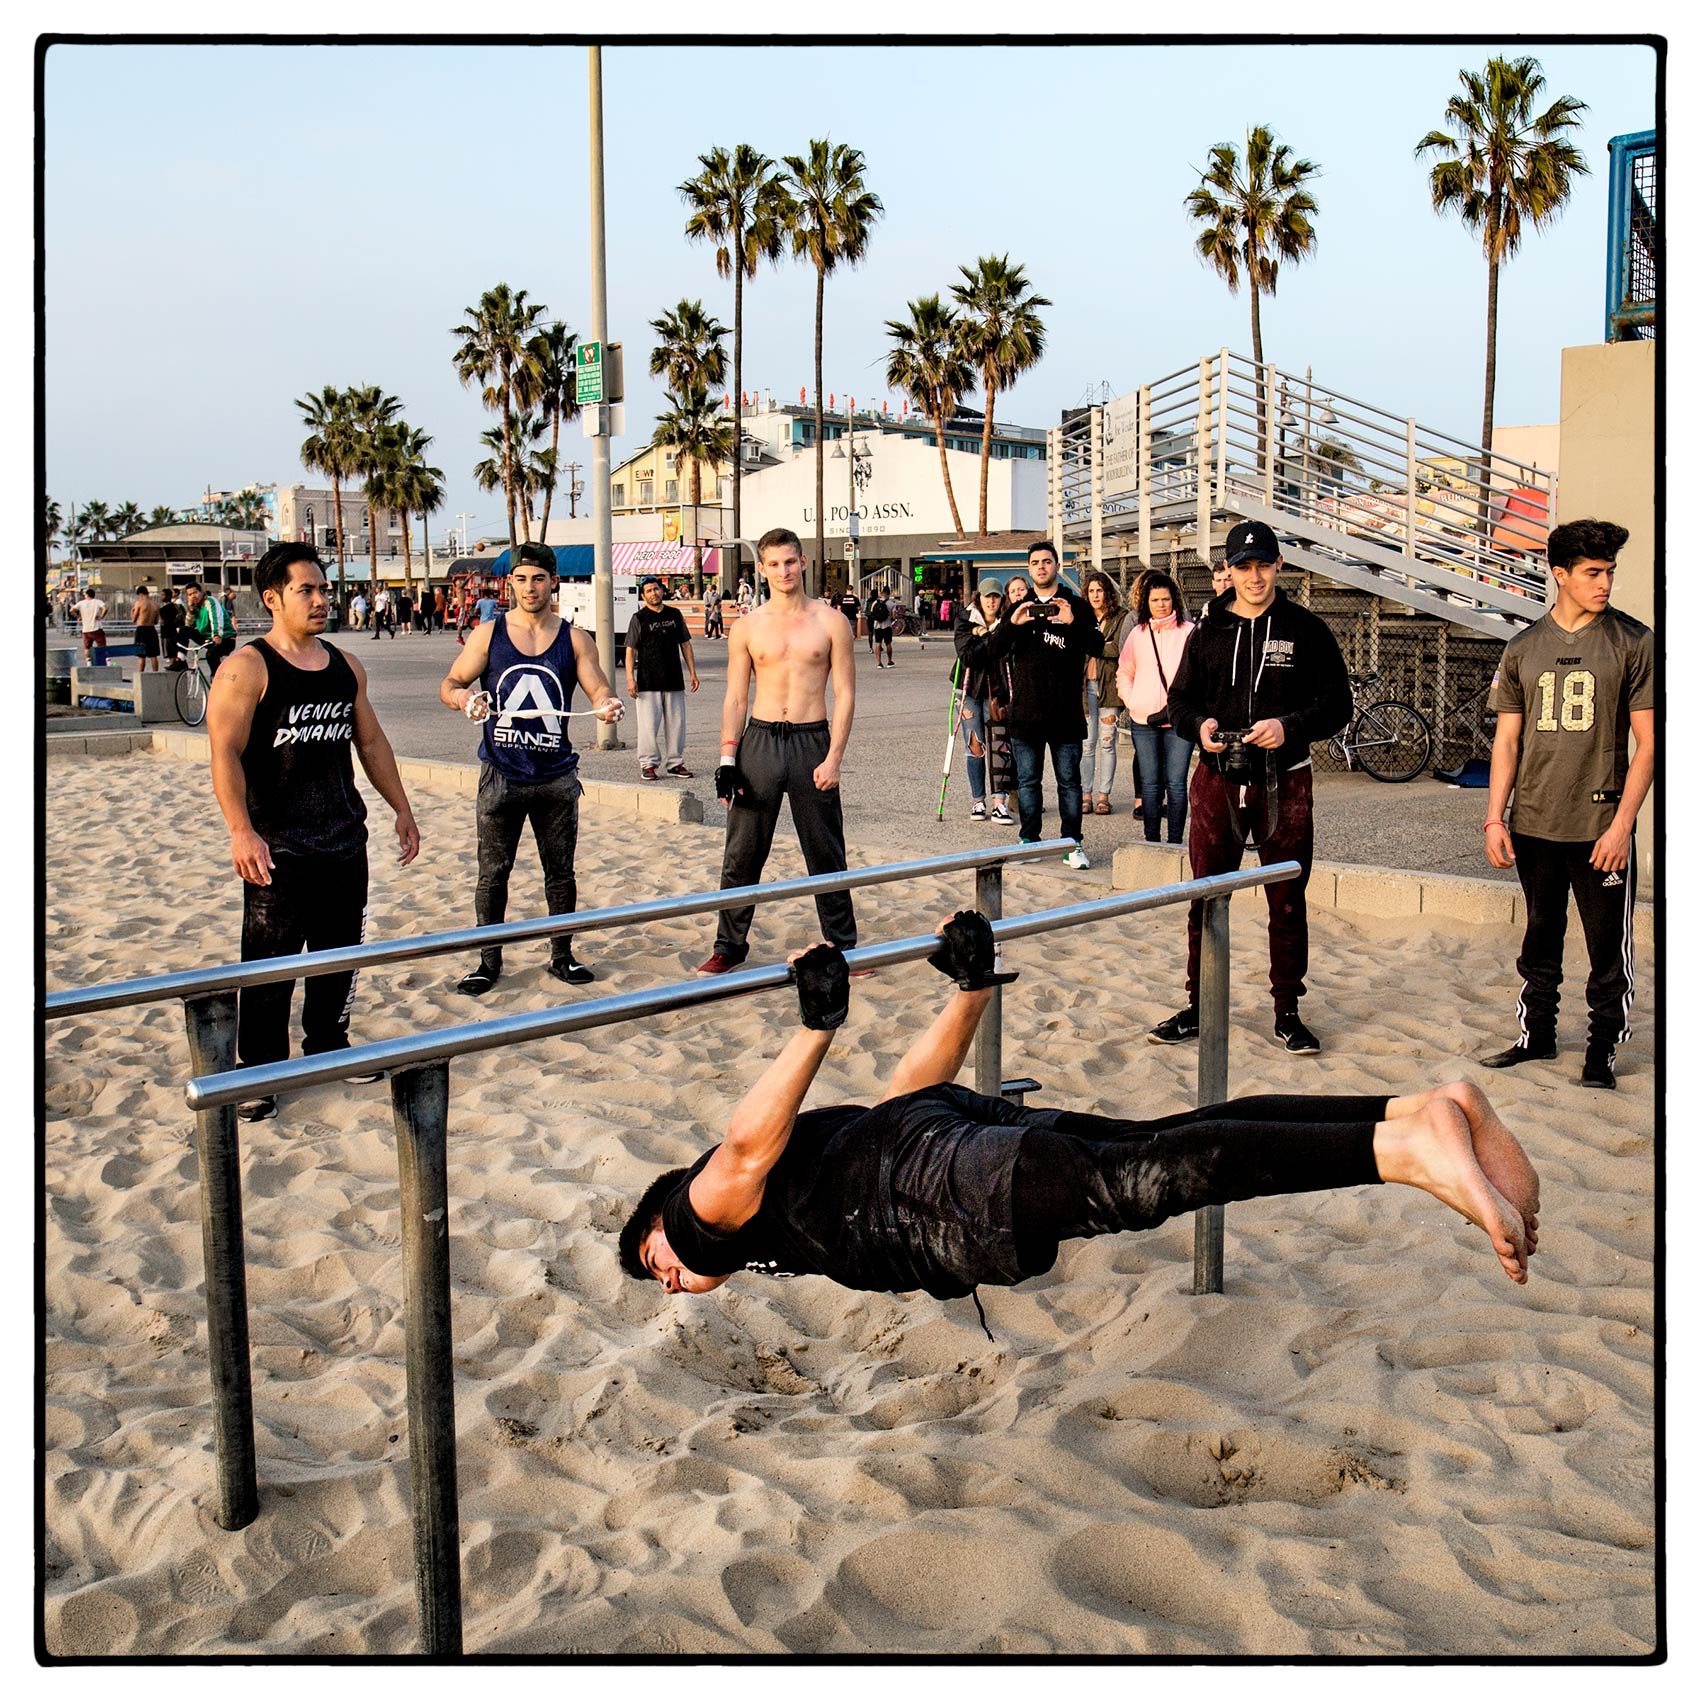 a-group-of-boys-practice-their-gymnastics-on-venice-beach-california-2